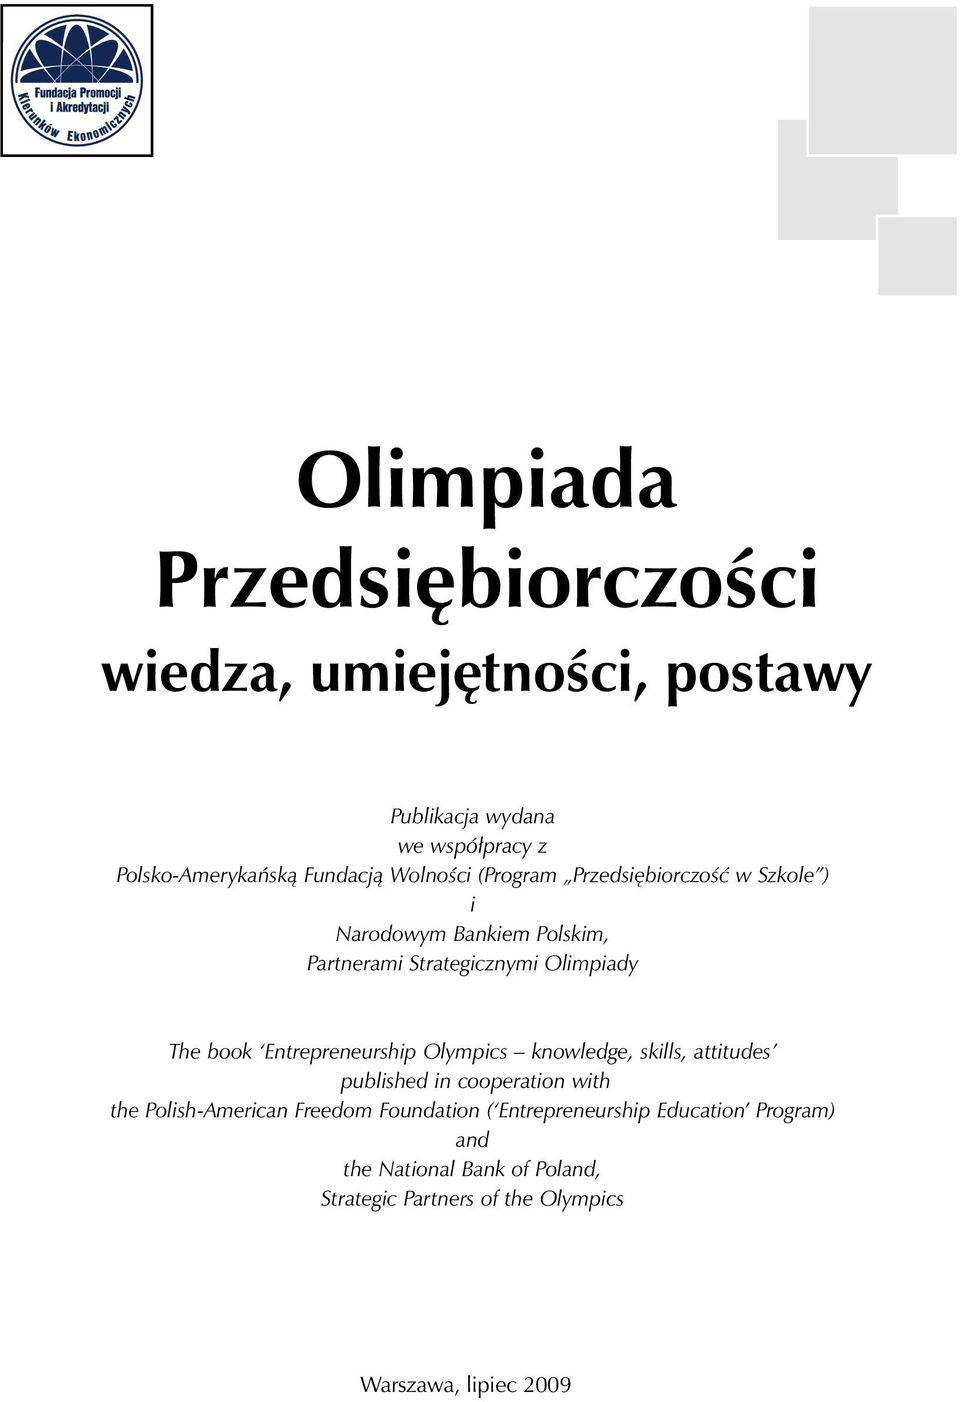 Entrepreneurship Olympics knowledge, skills, attitudes published in cooperation with the Polish-American Freedom Foundation